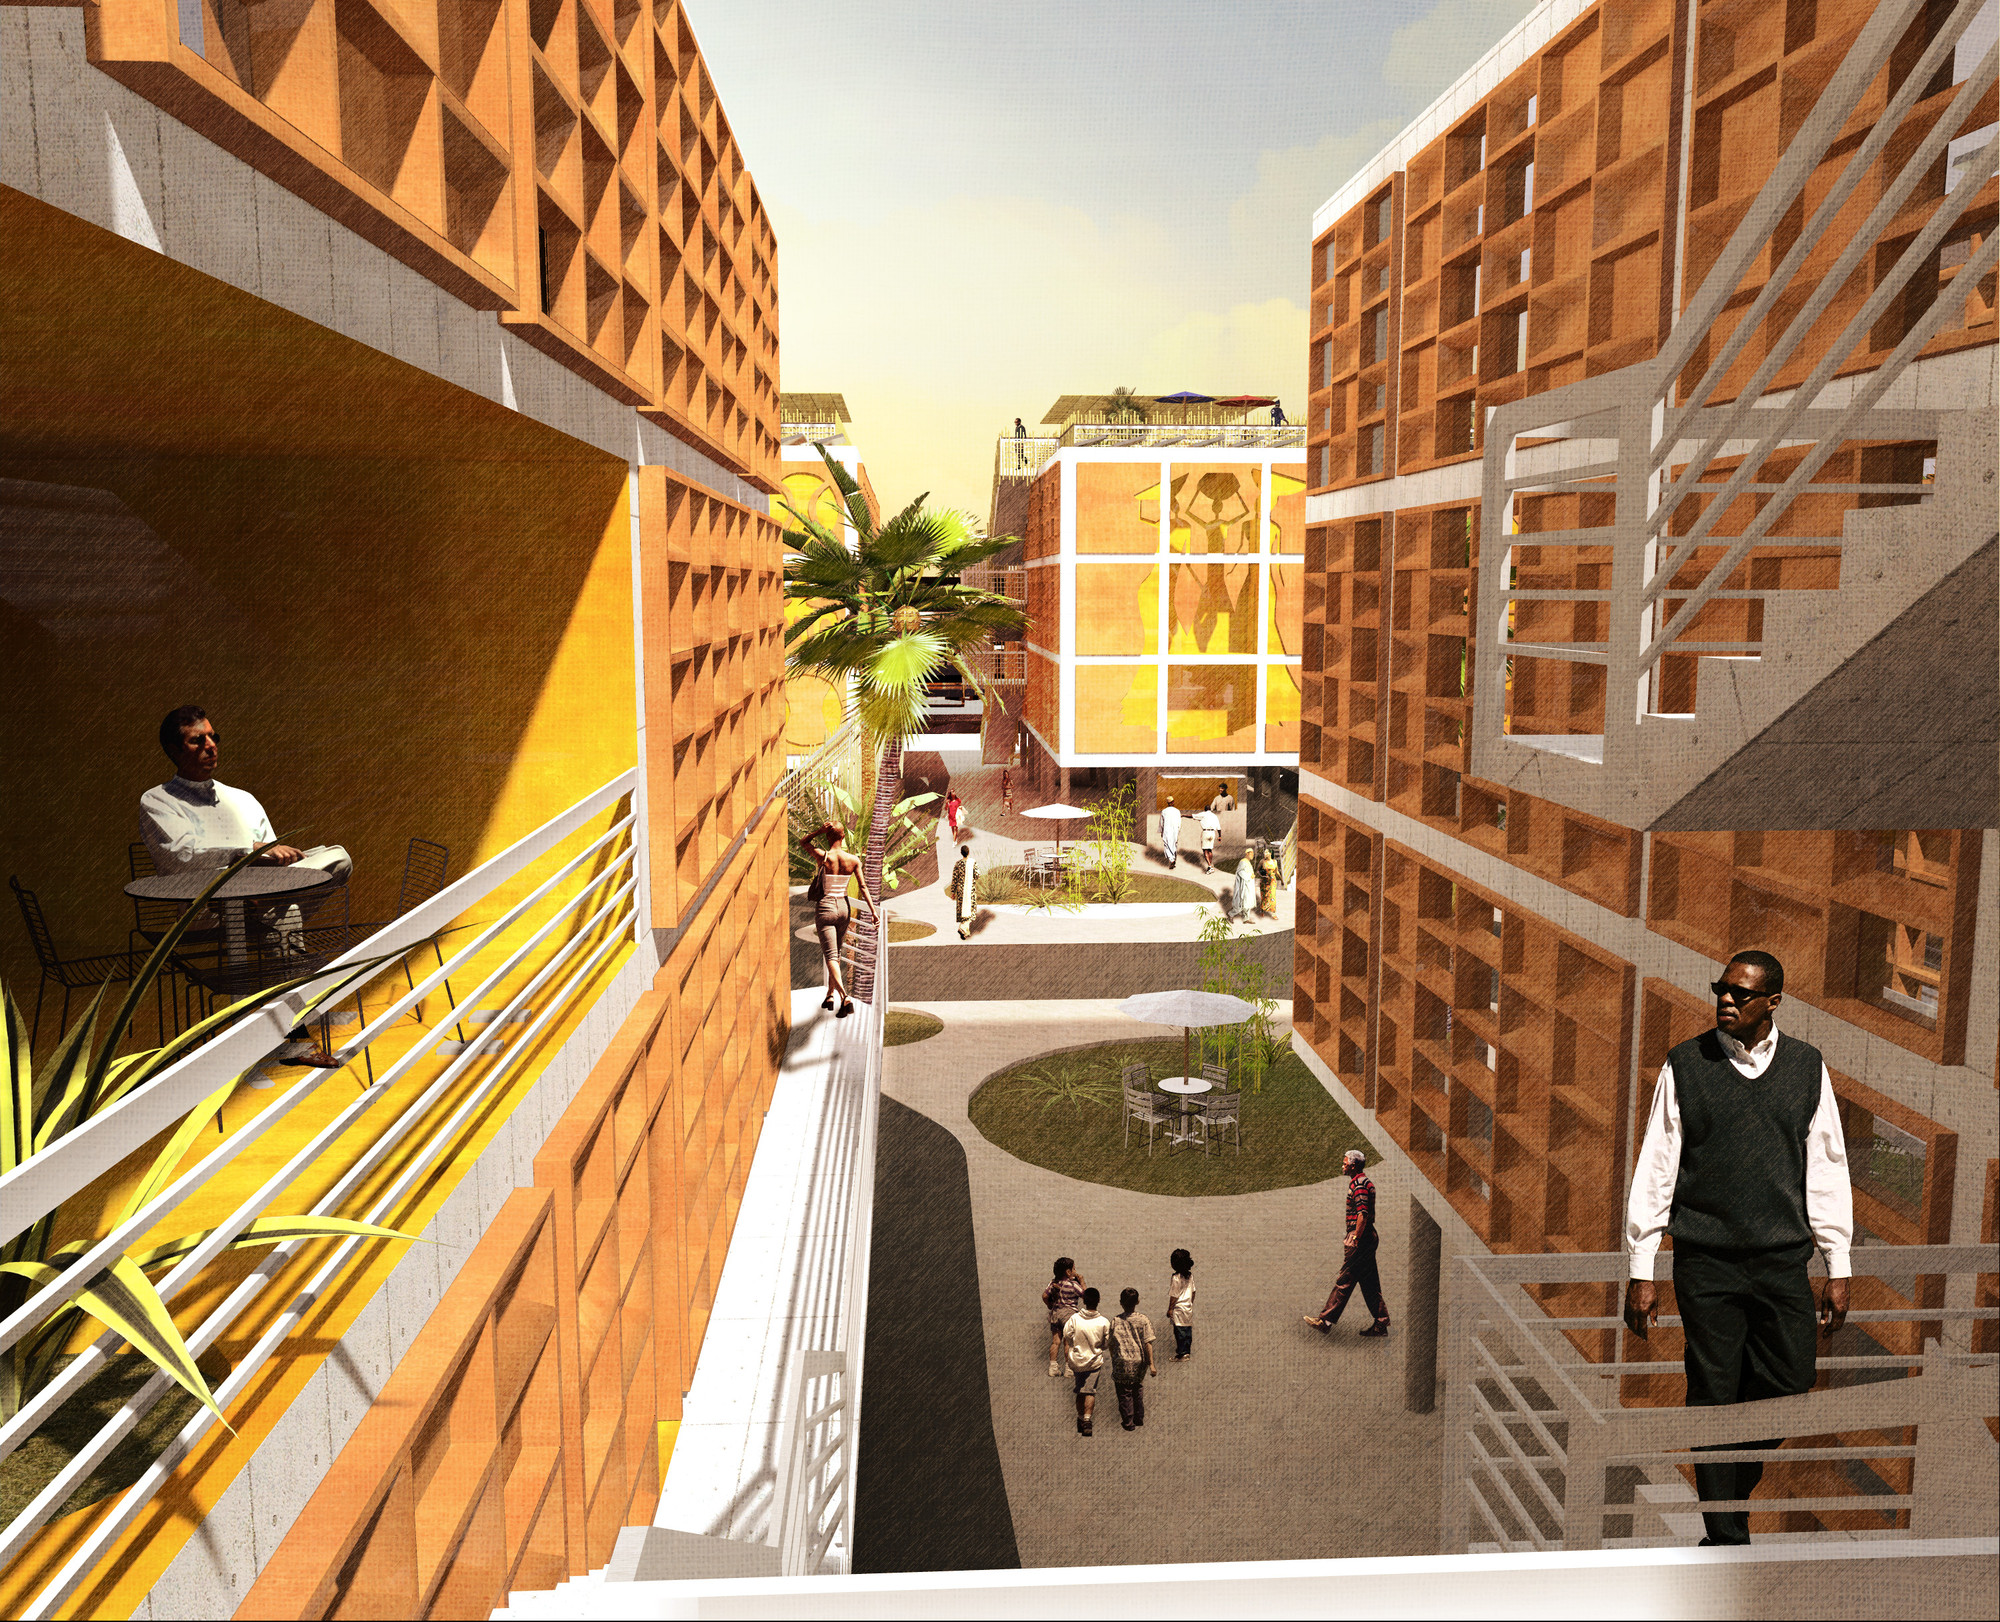 Architectural Design Of Residential Building 7 Architects Designing A Diverse Future In Africa Archdaily